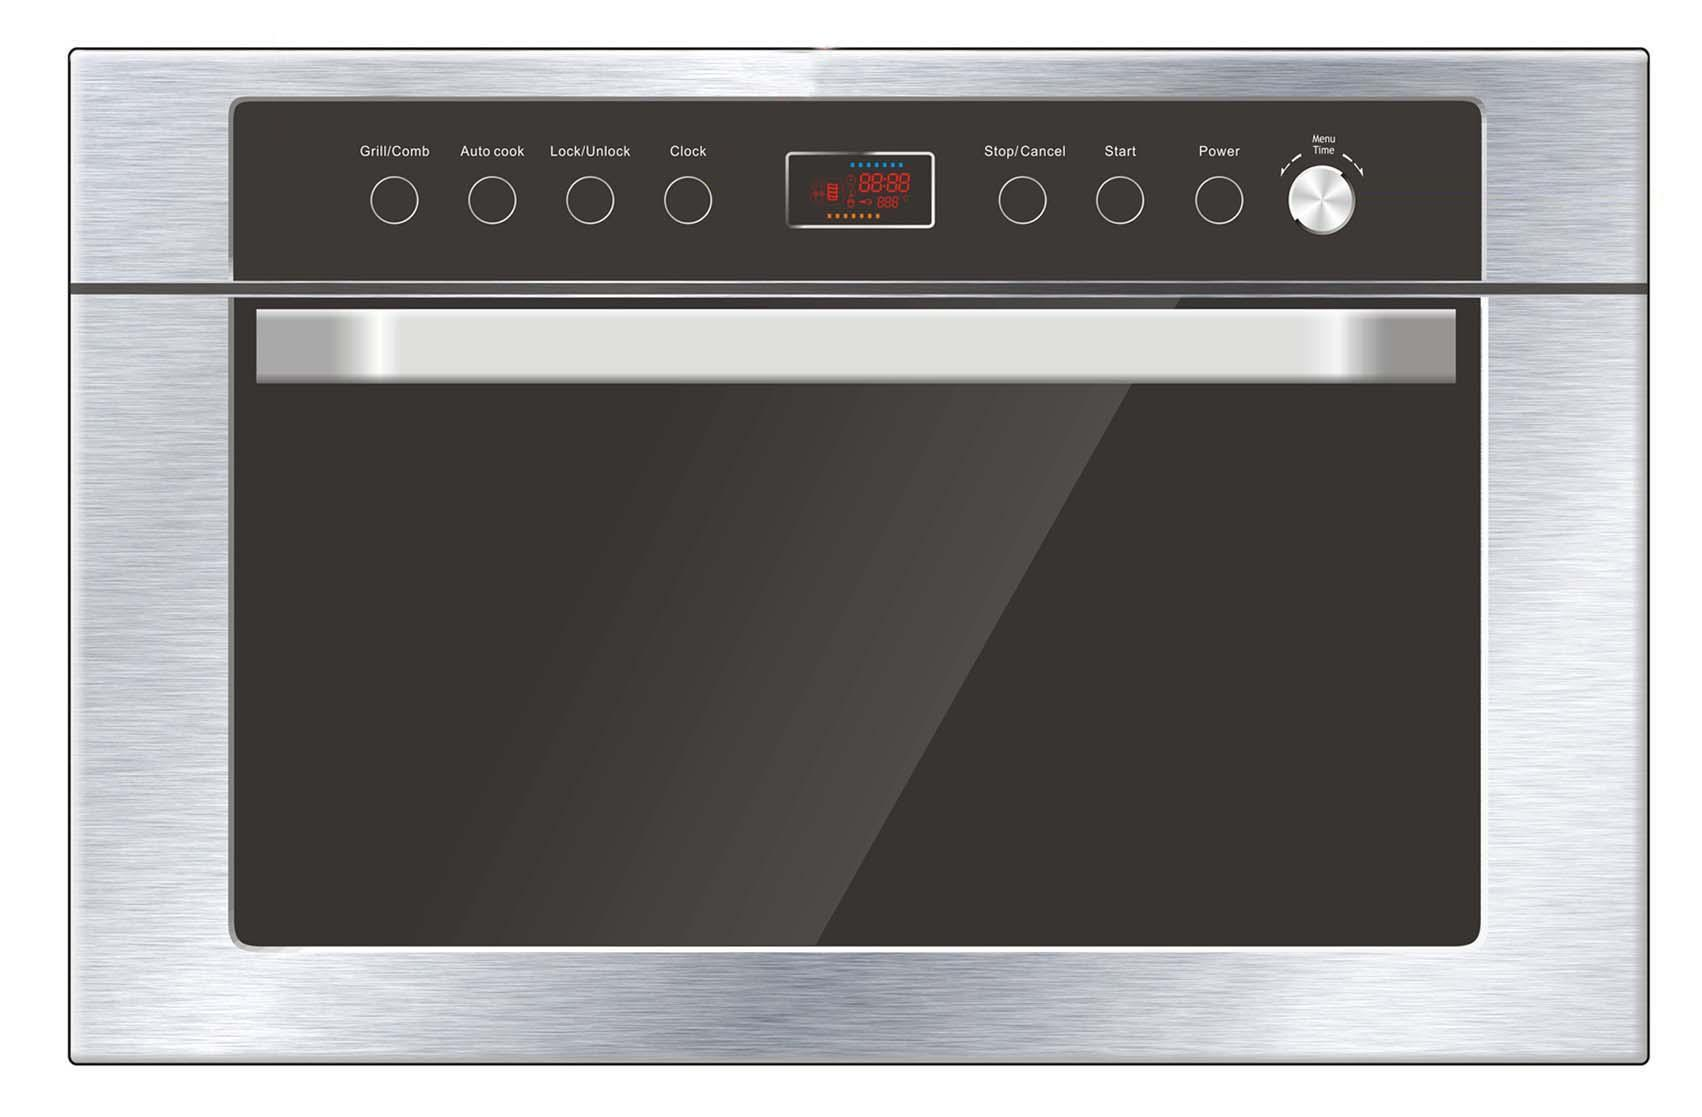 Countertop Microwave Grill Convection Oven : Convection Microwave Oven/Grill Microwave Oven/Digital Microwave Oven ...